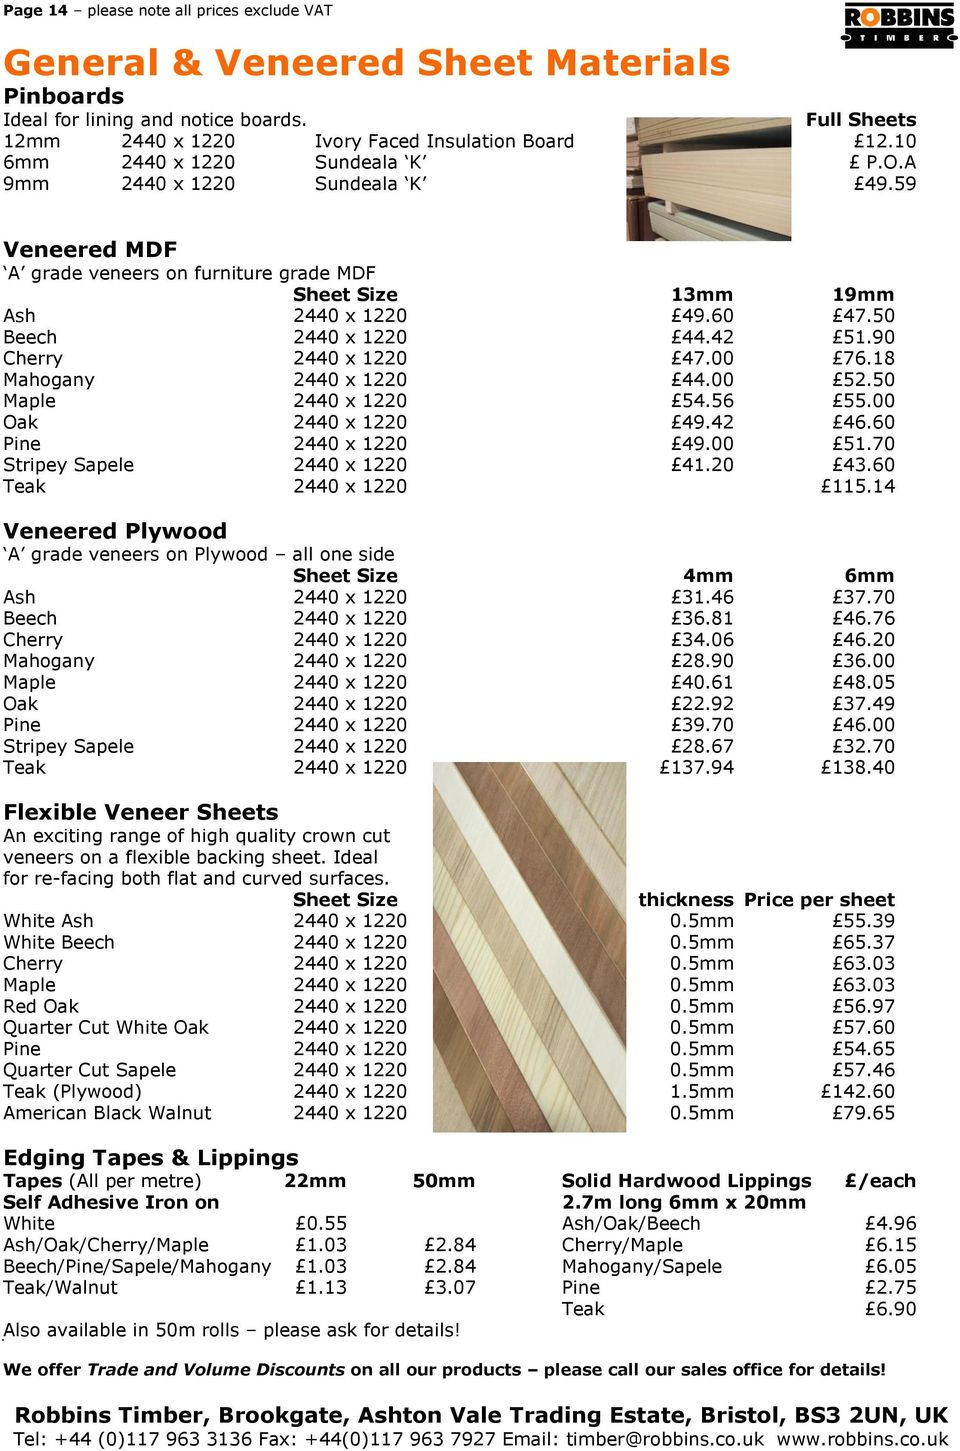 10 X PINE REDWOOD WOOD CORNICE COVING 3 metre x 65mm x 45mm lovely pieces